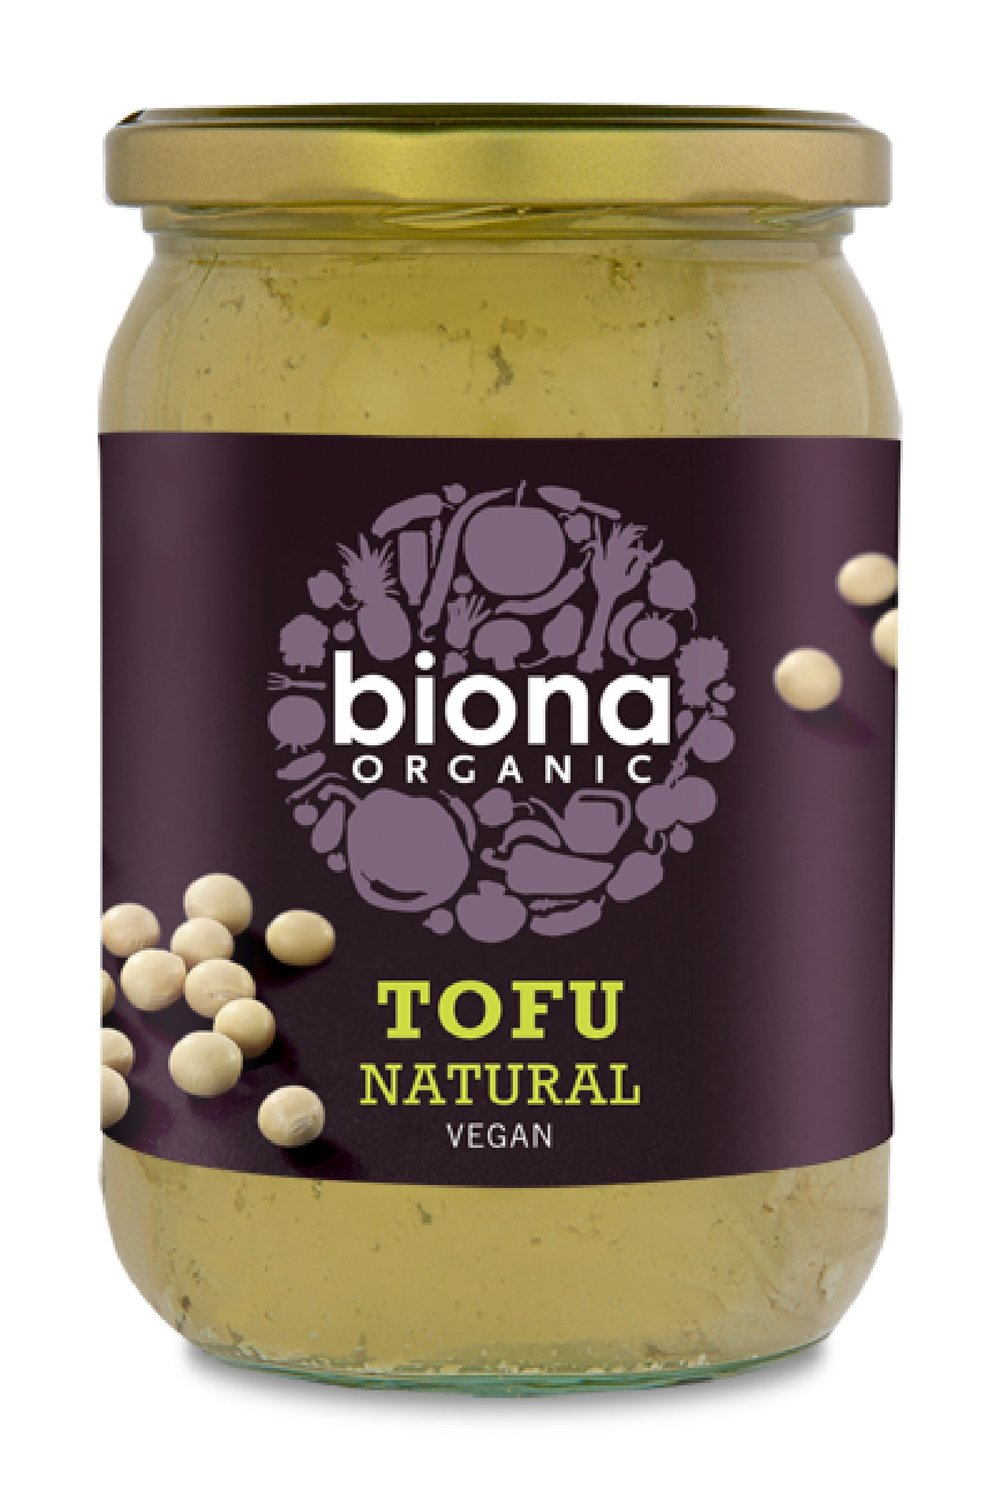 Biona_Tofu natural.JPG